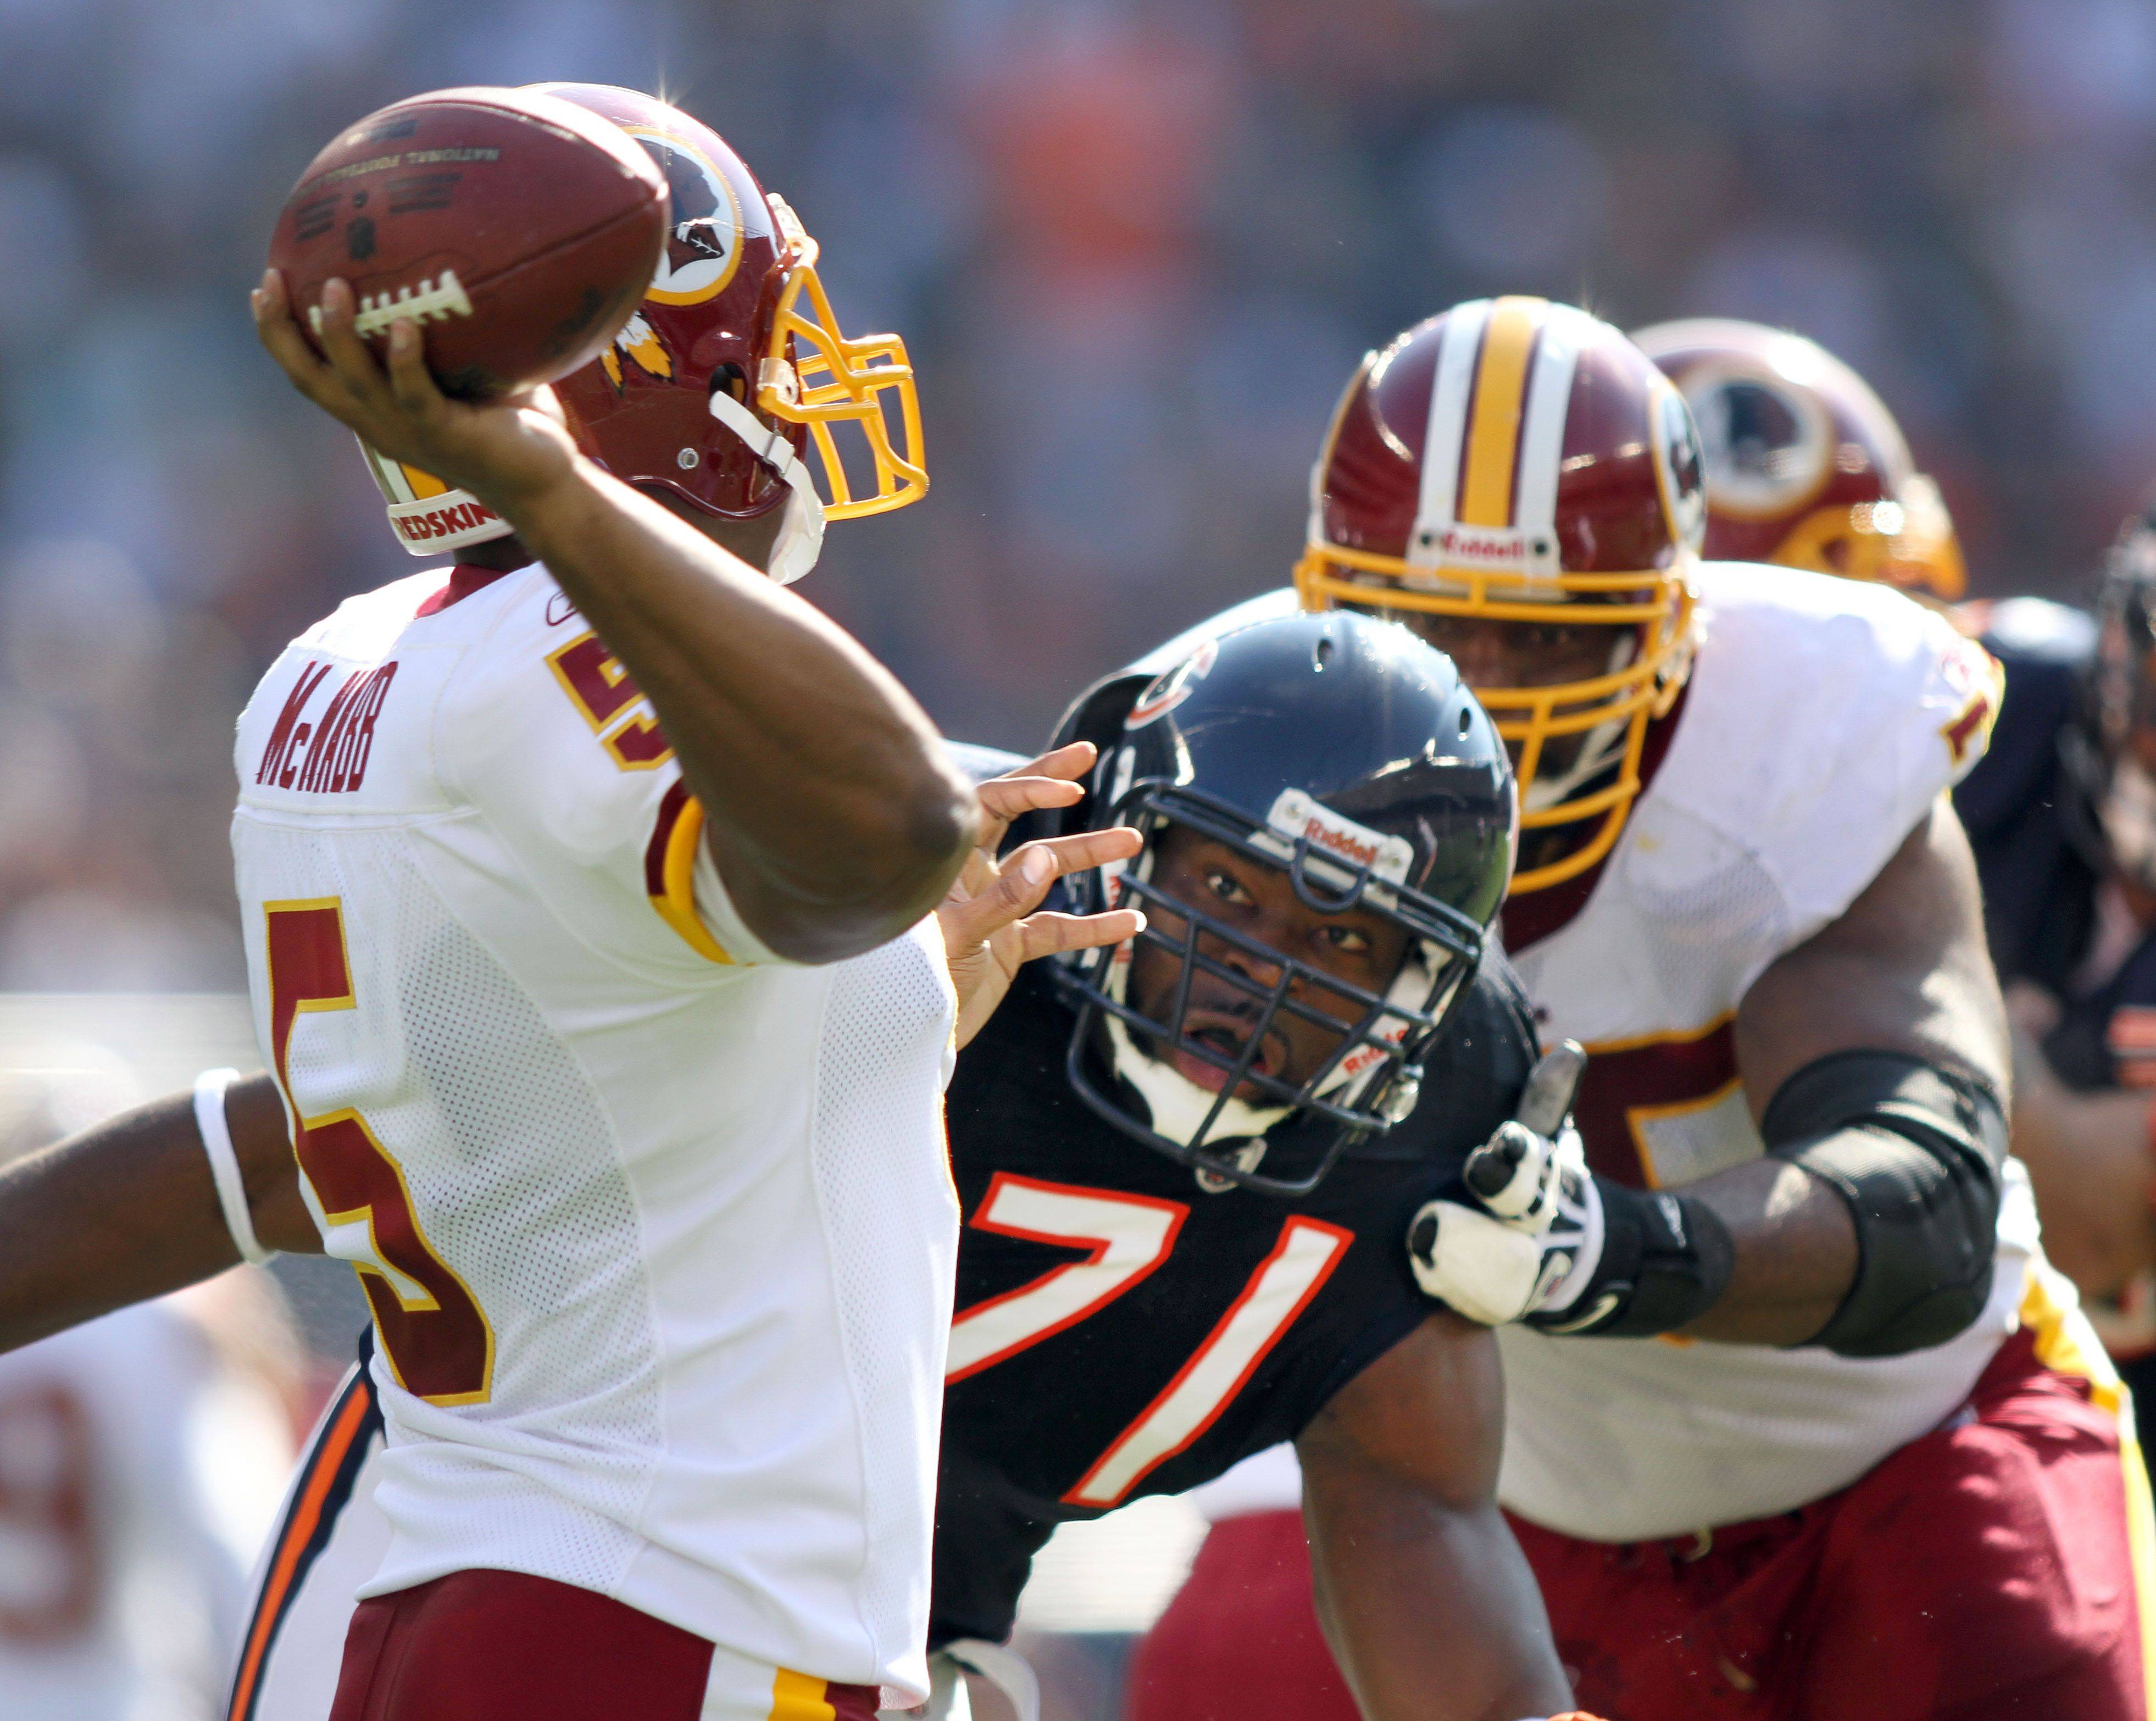 Chicago Bears defensive tackle Israel Idonije rushes Washington Redskins quarterback Donovan McNabb during the Bears' 14-17 loss to the Redskins.